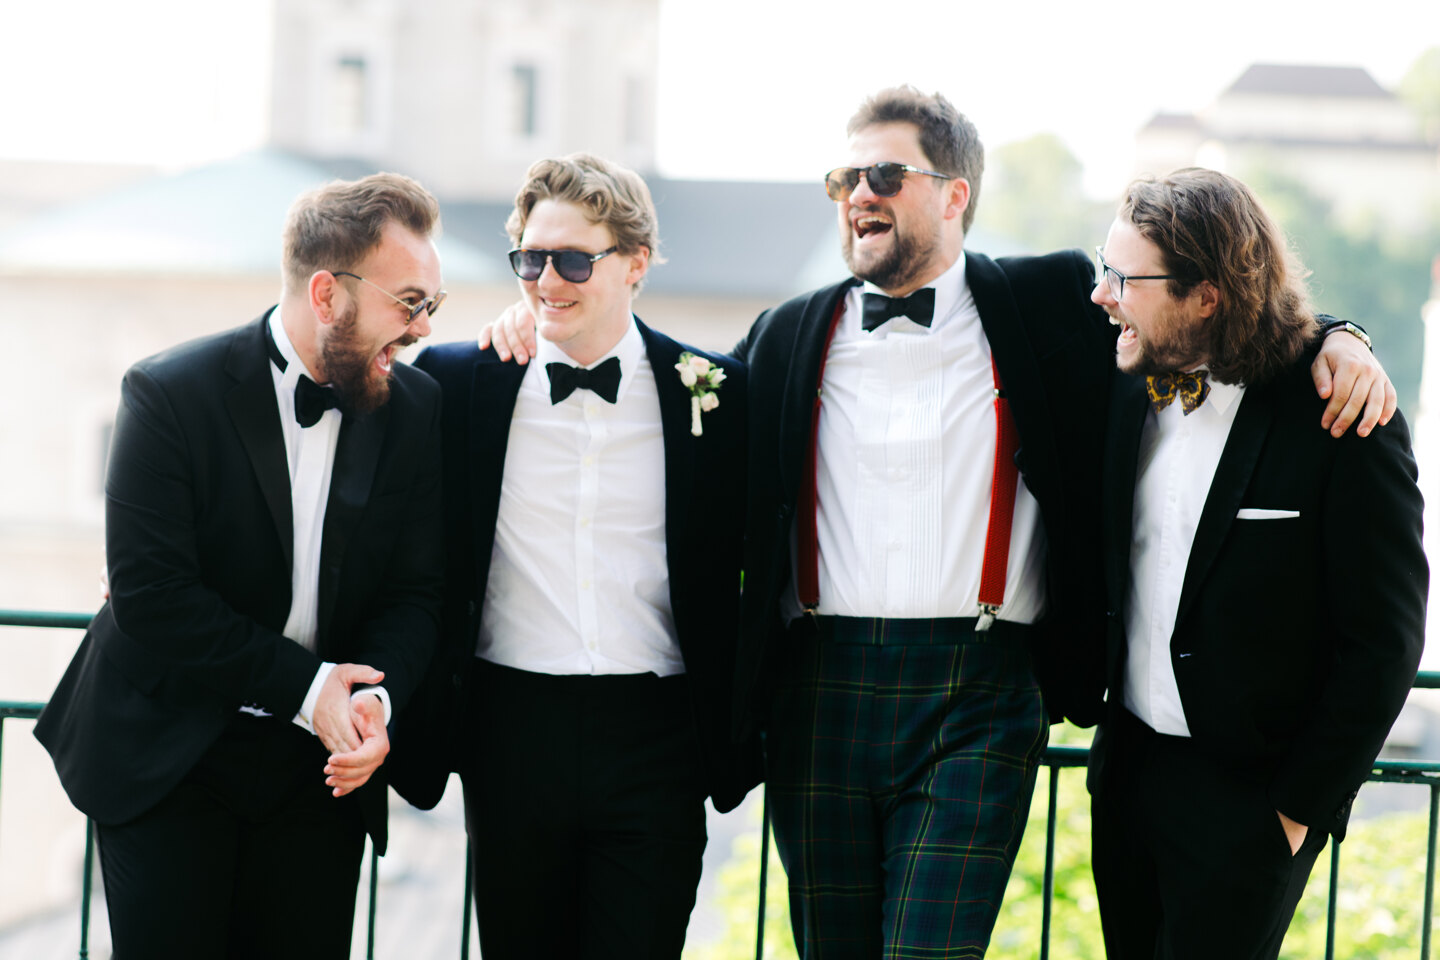 Services of Wedding Photographer in Italy: Groom and his friends have fun chatting on the balcony